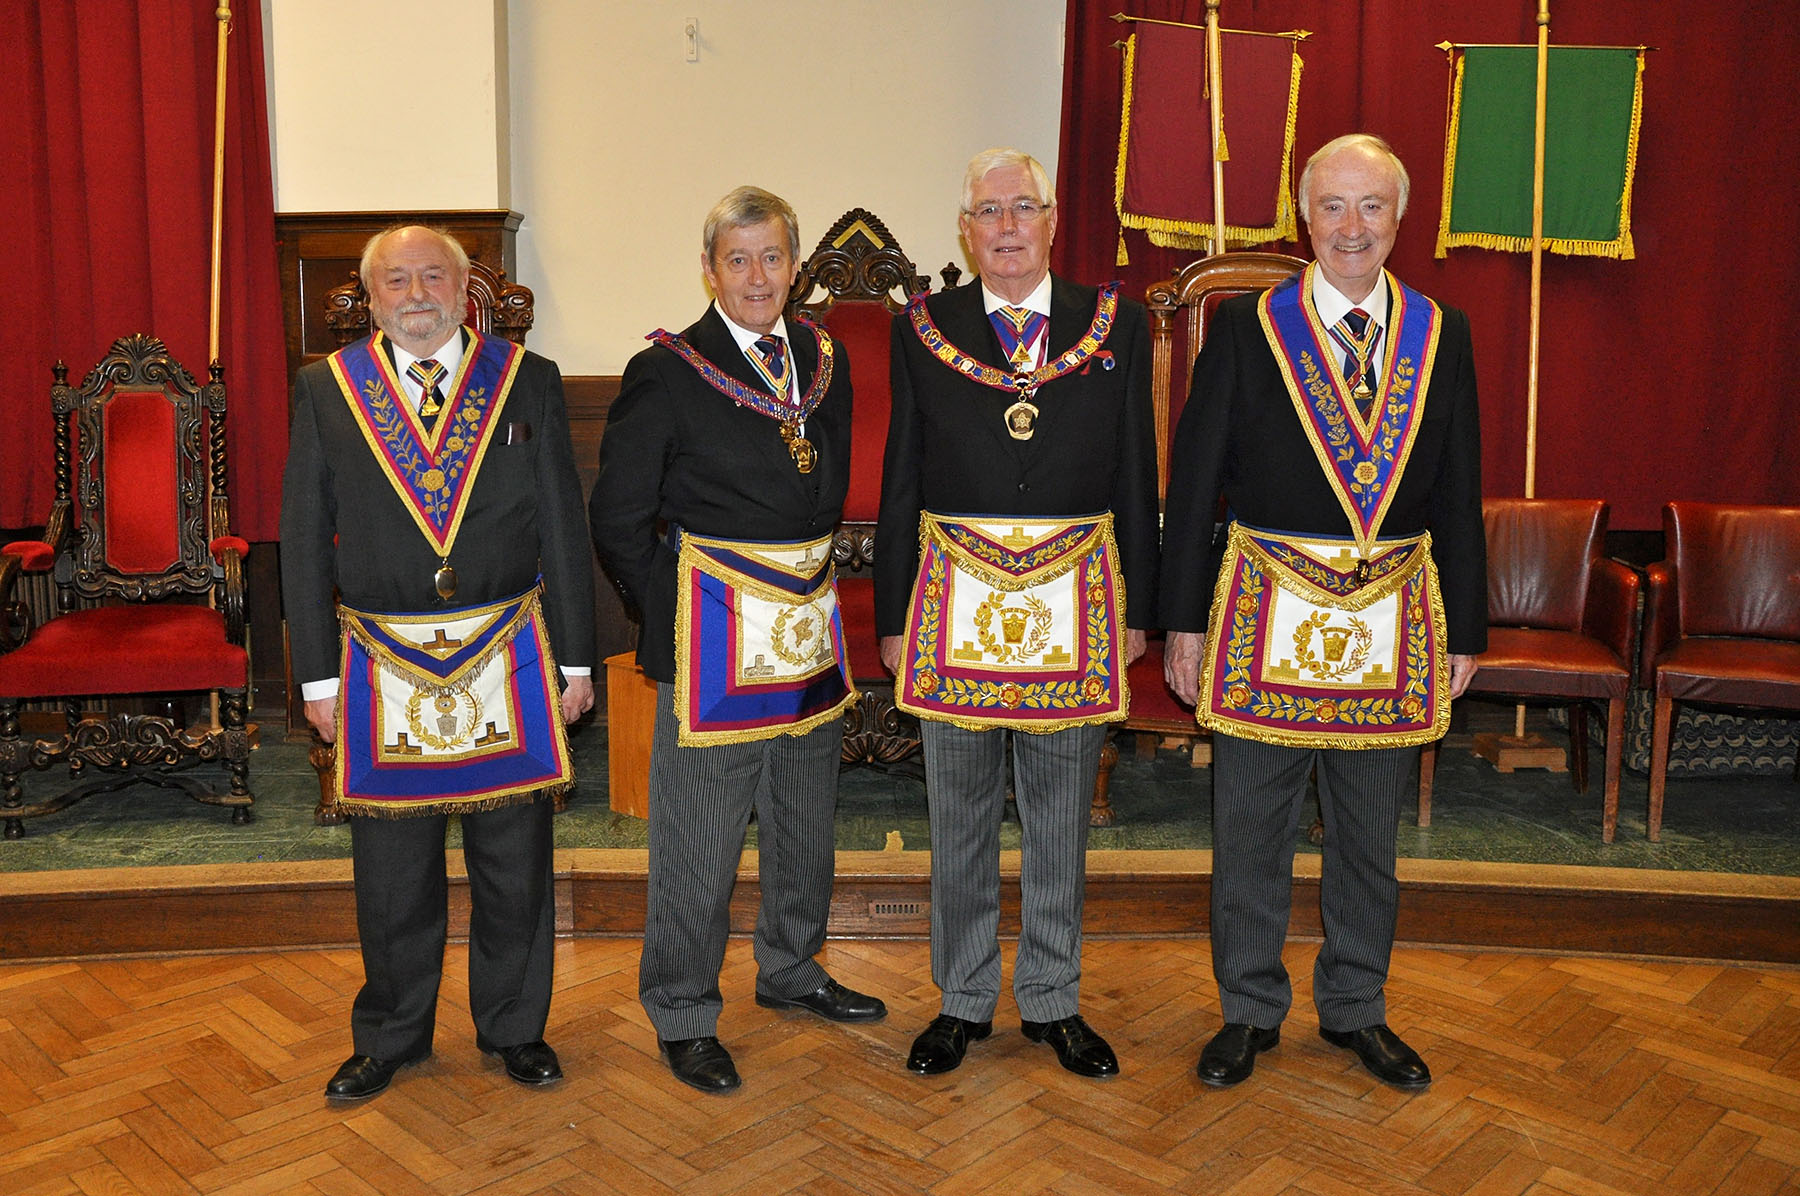 Grand Master's Lodges of Instruction